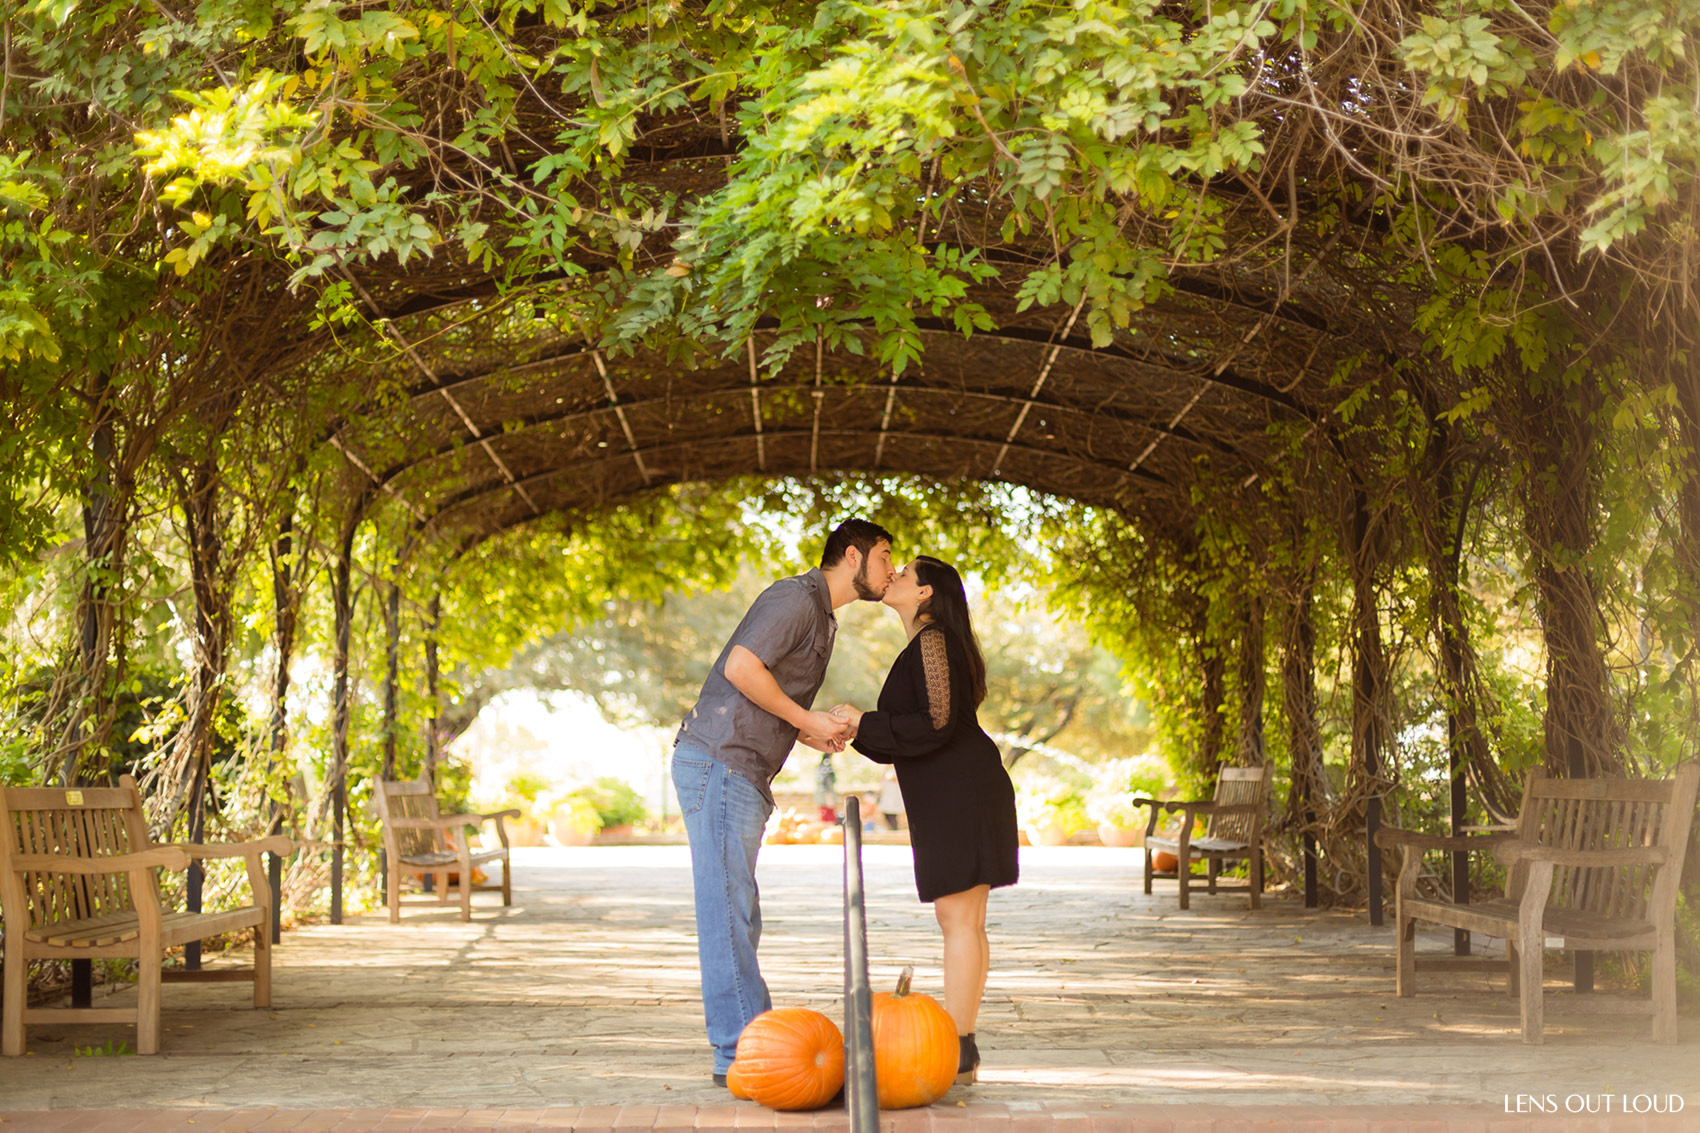 San antonio botanical gardens engagement photos julie - San antonio botanical garden wedding ...